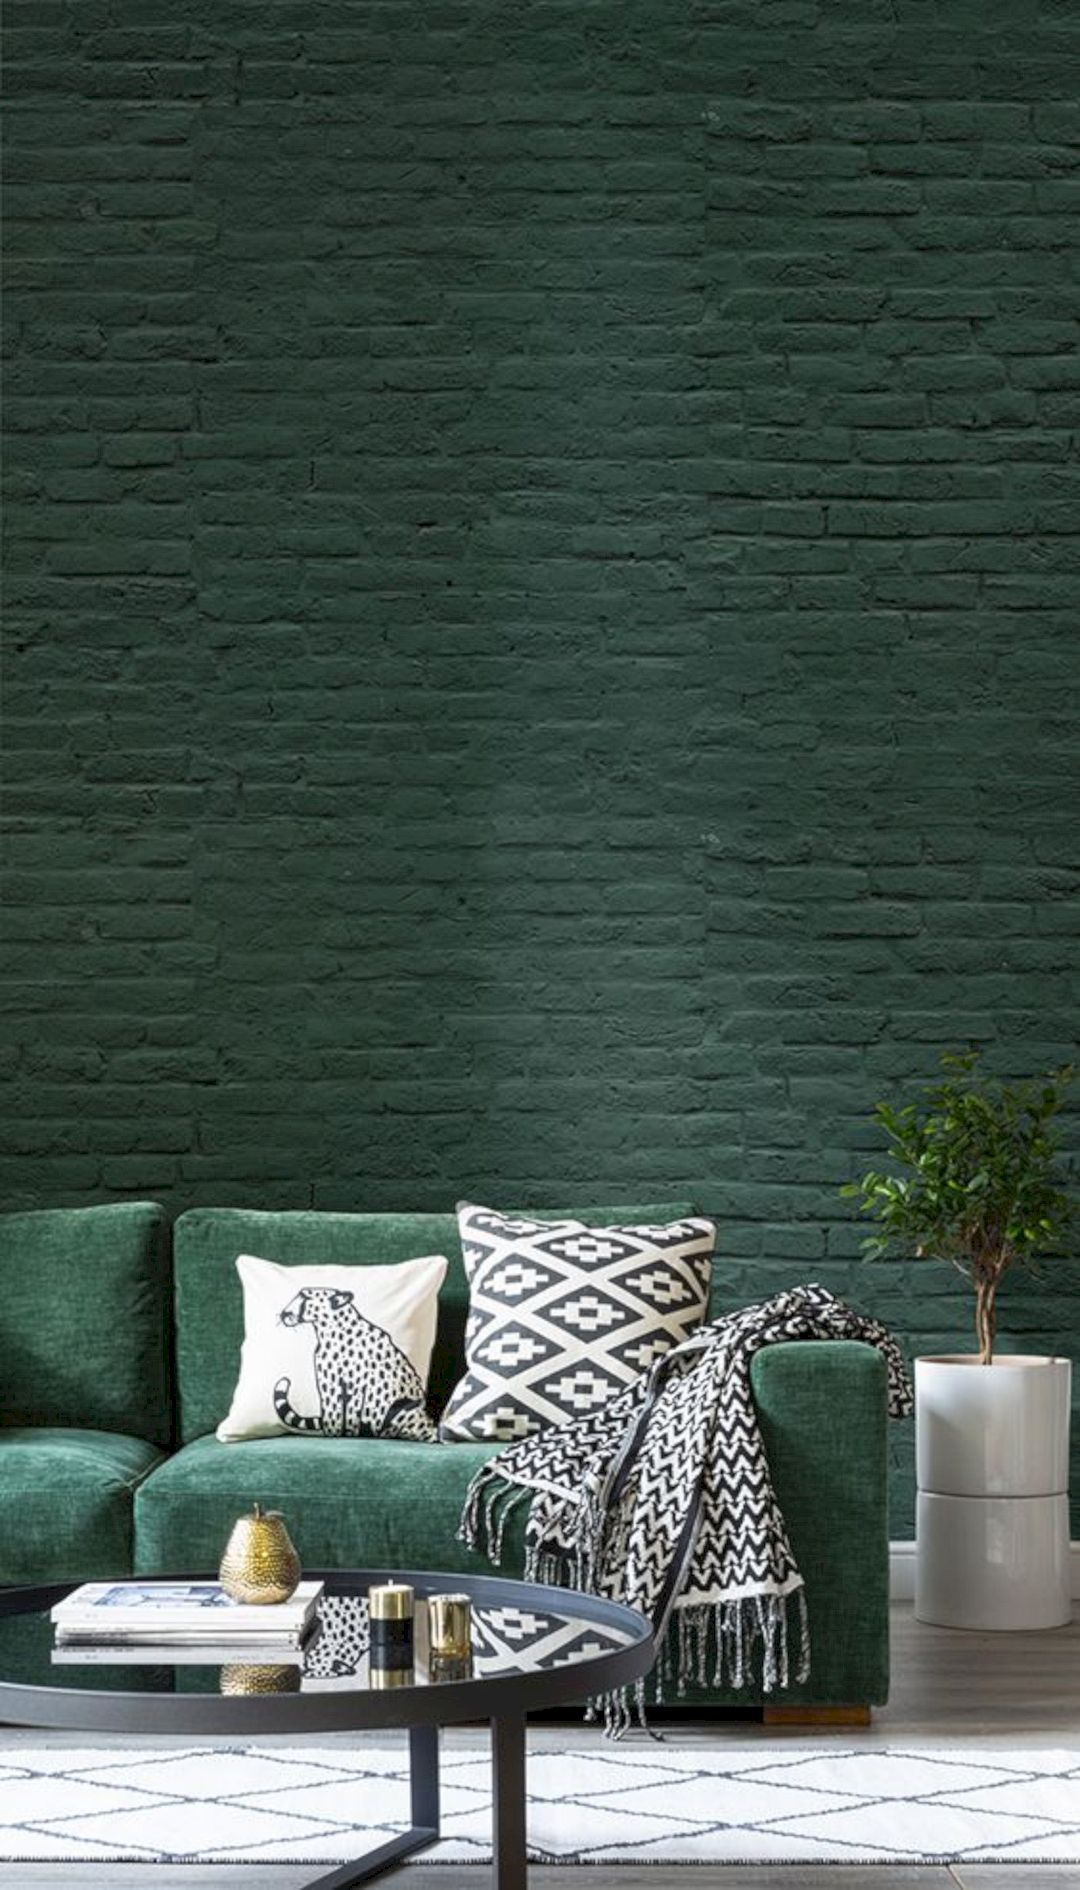 15 Impressive Wall Decorating Ideas for Your